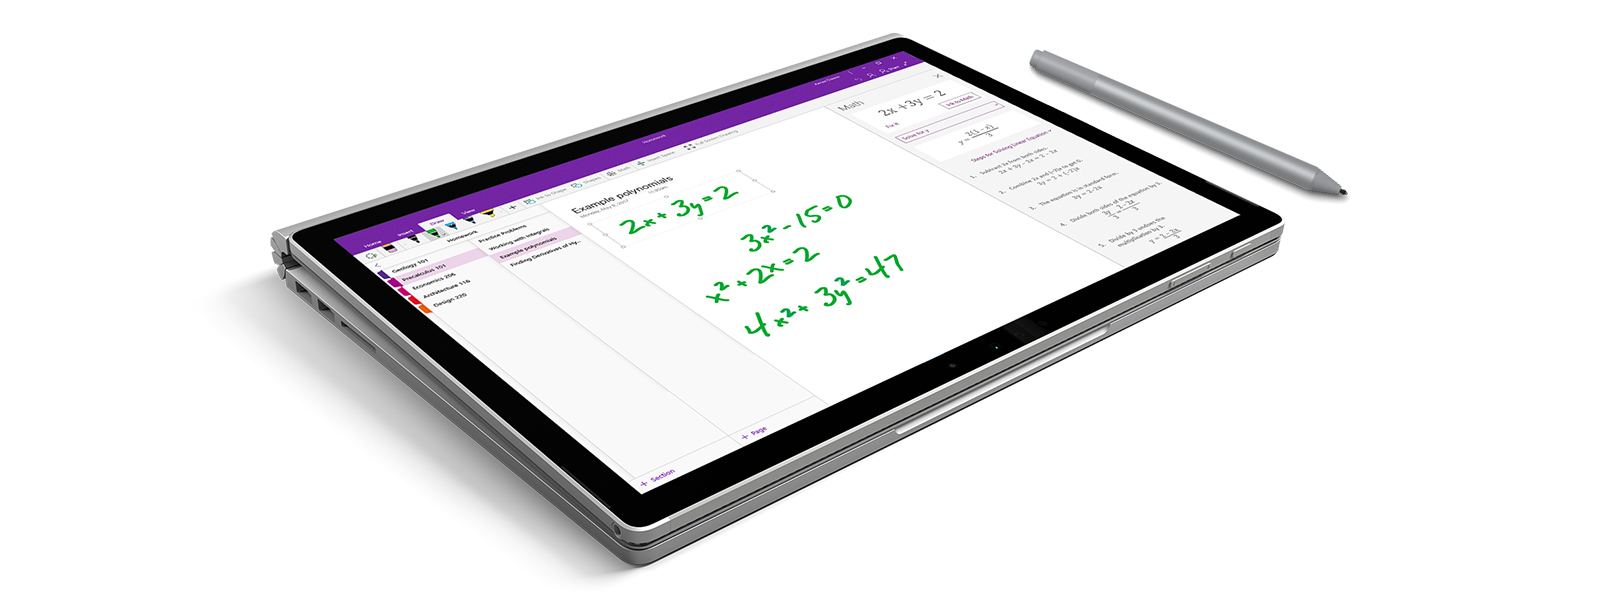 OneNote screen shot showing Ink Math Assistant